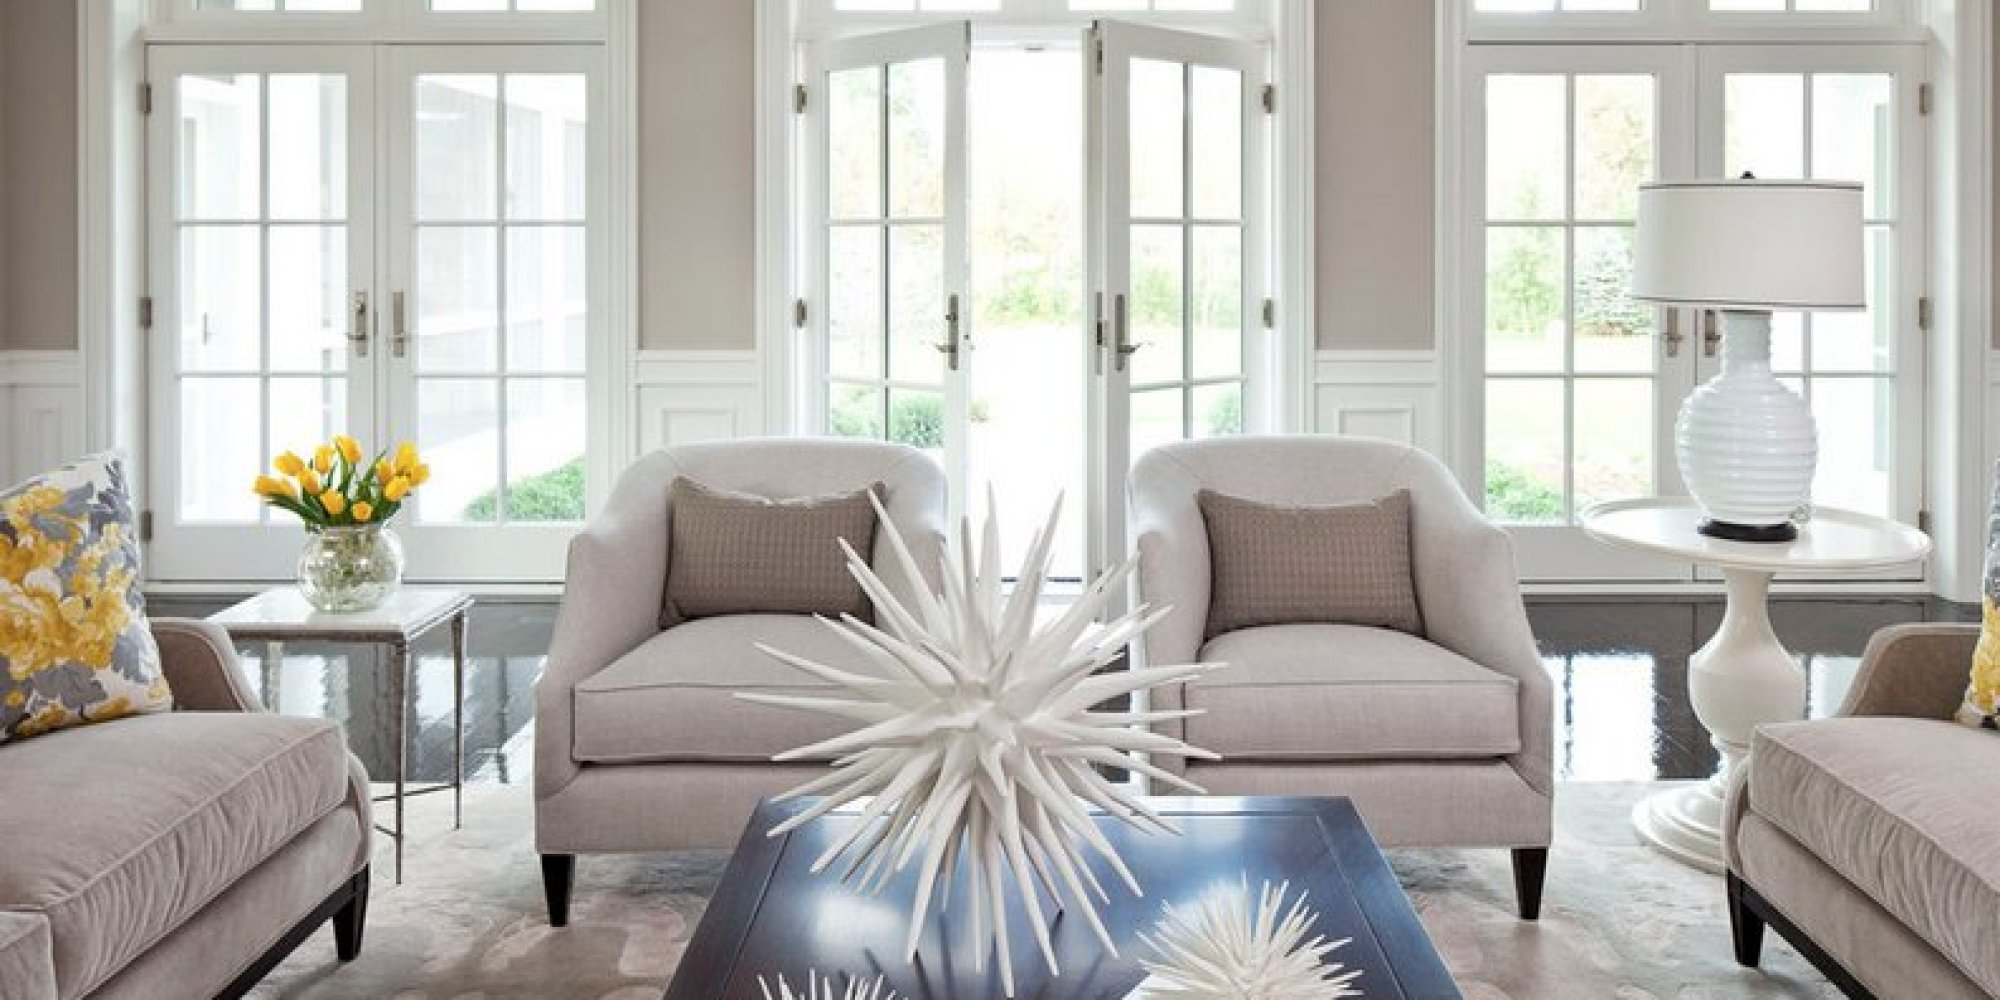 The 8 Best Neutral Paint Colors Thatll Work In Any Home No Matter Style PHOTOS